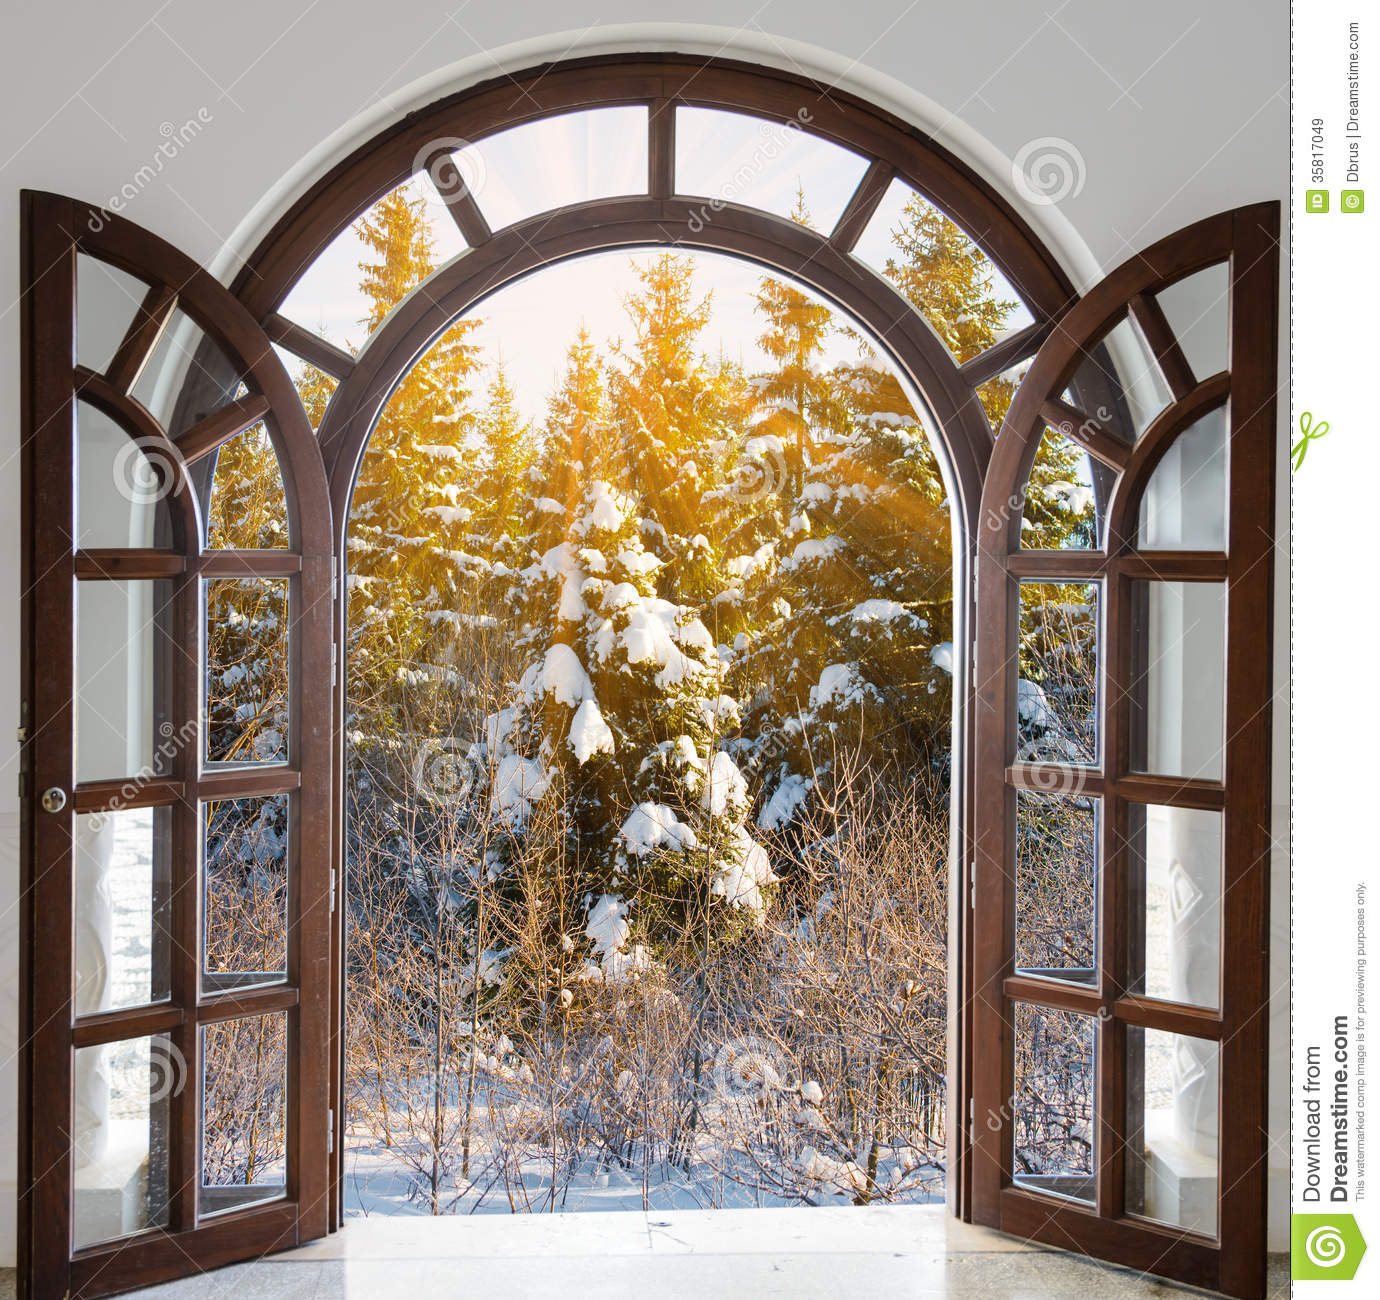 Arch in the fortress stock image. Image of doorway, arch ...